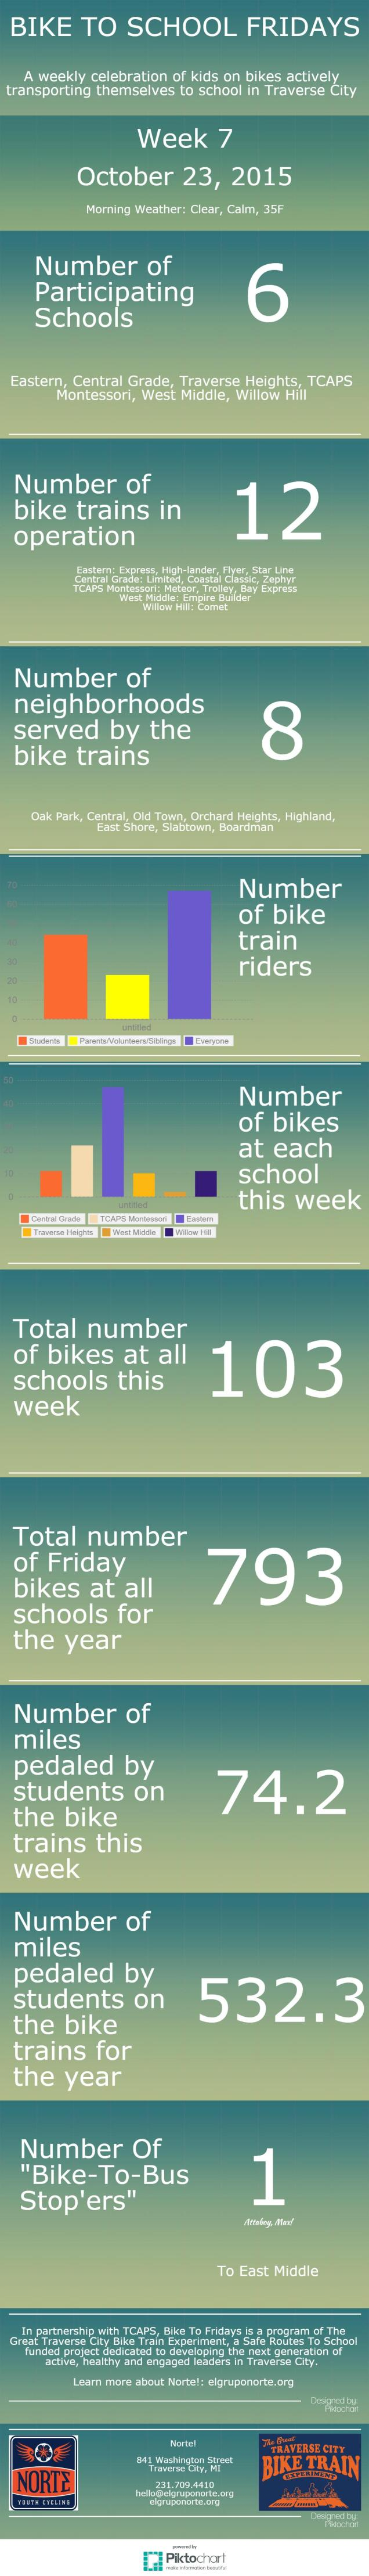 Bike To School Fridays- Week 7